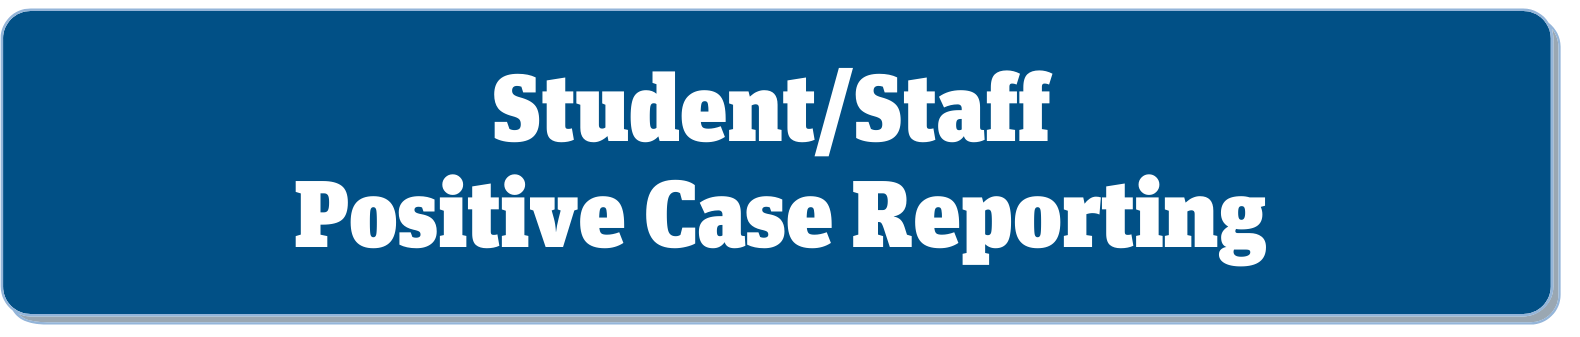 positive case reporting